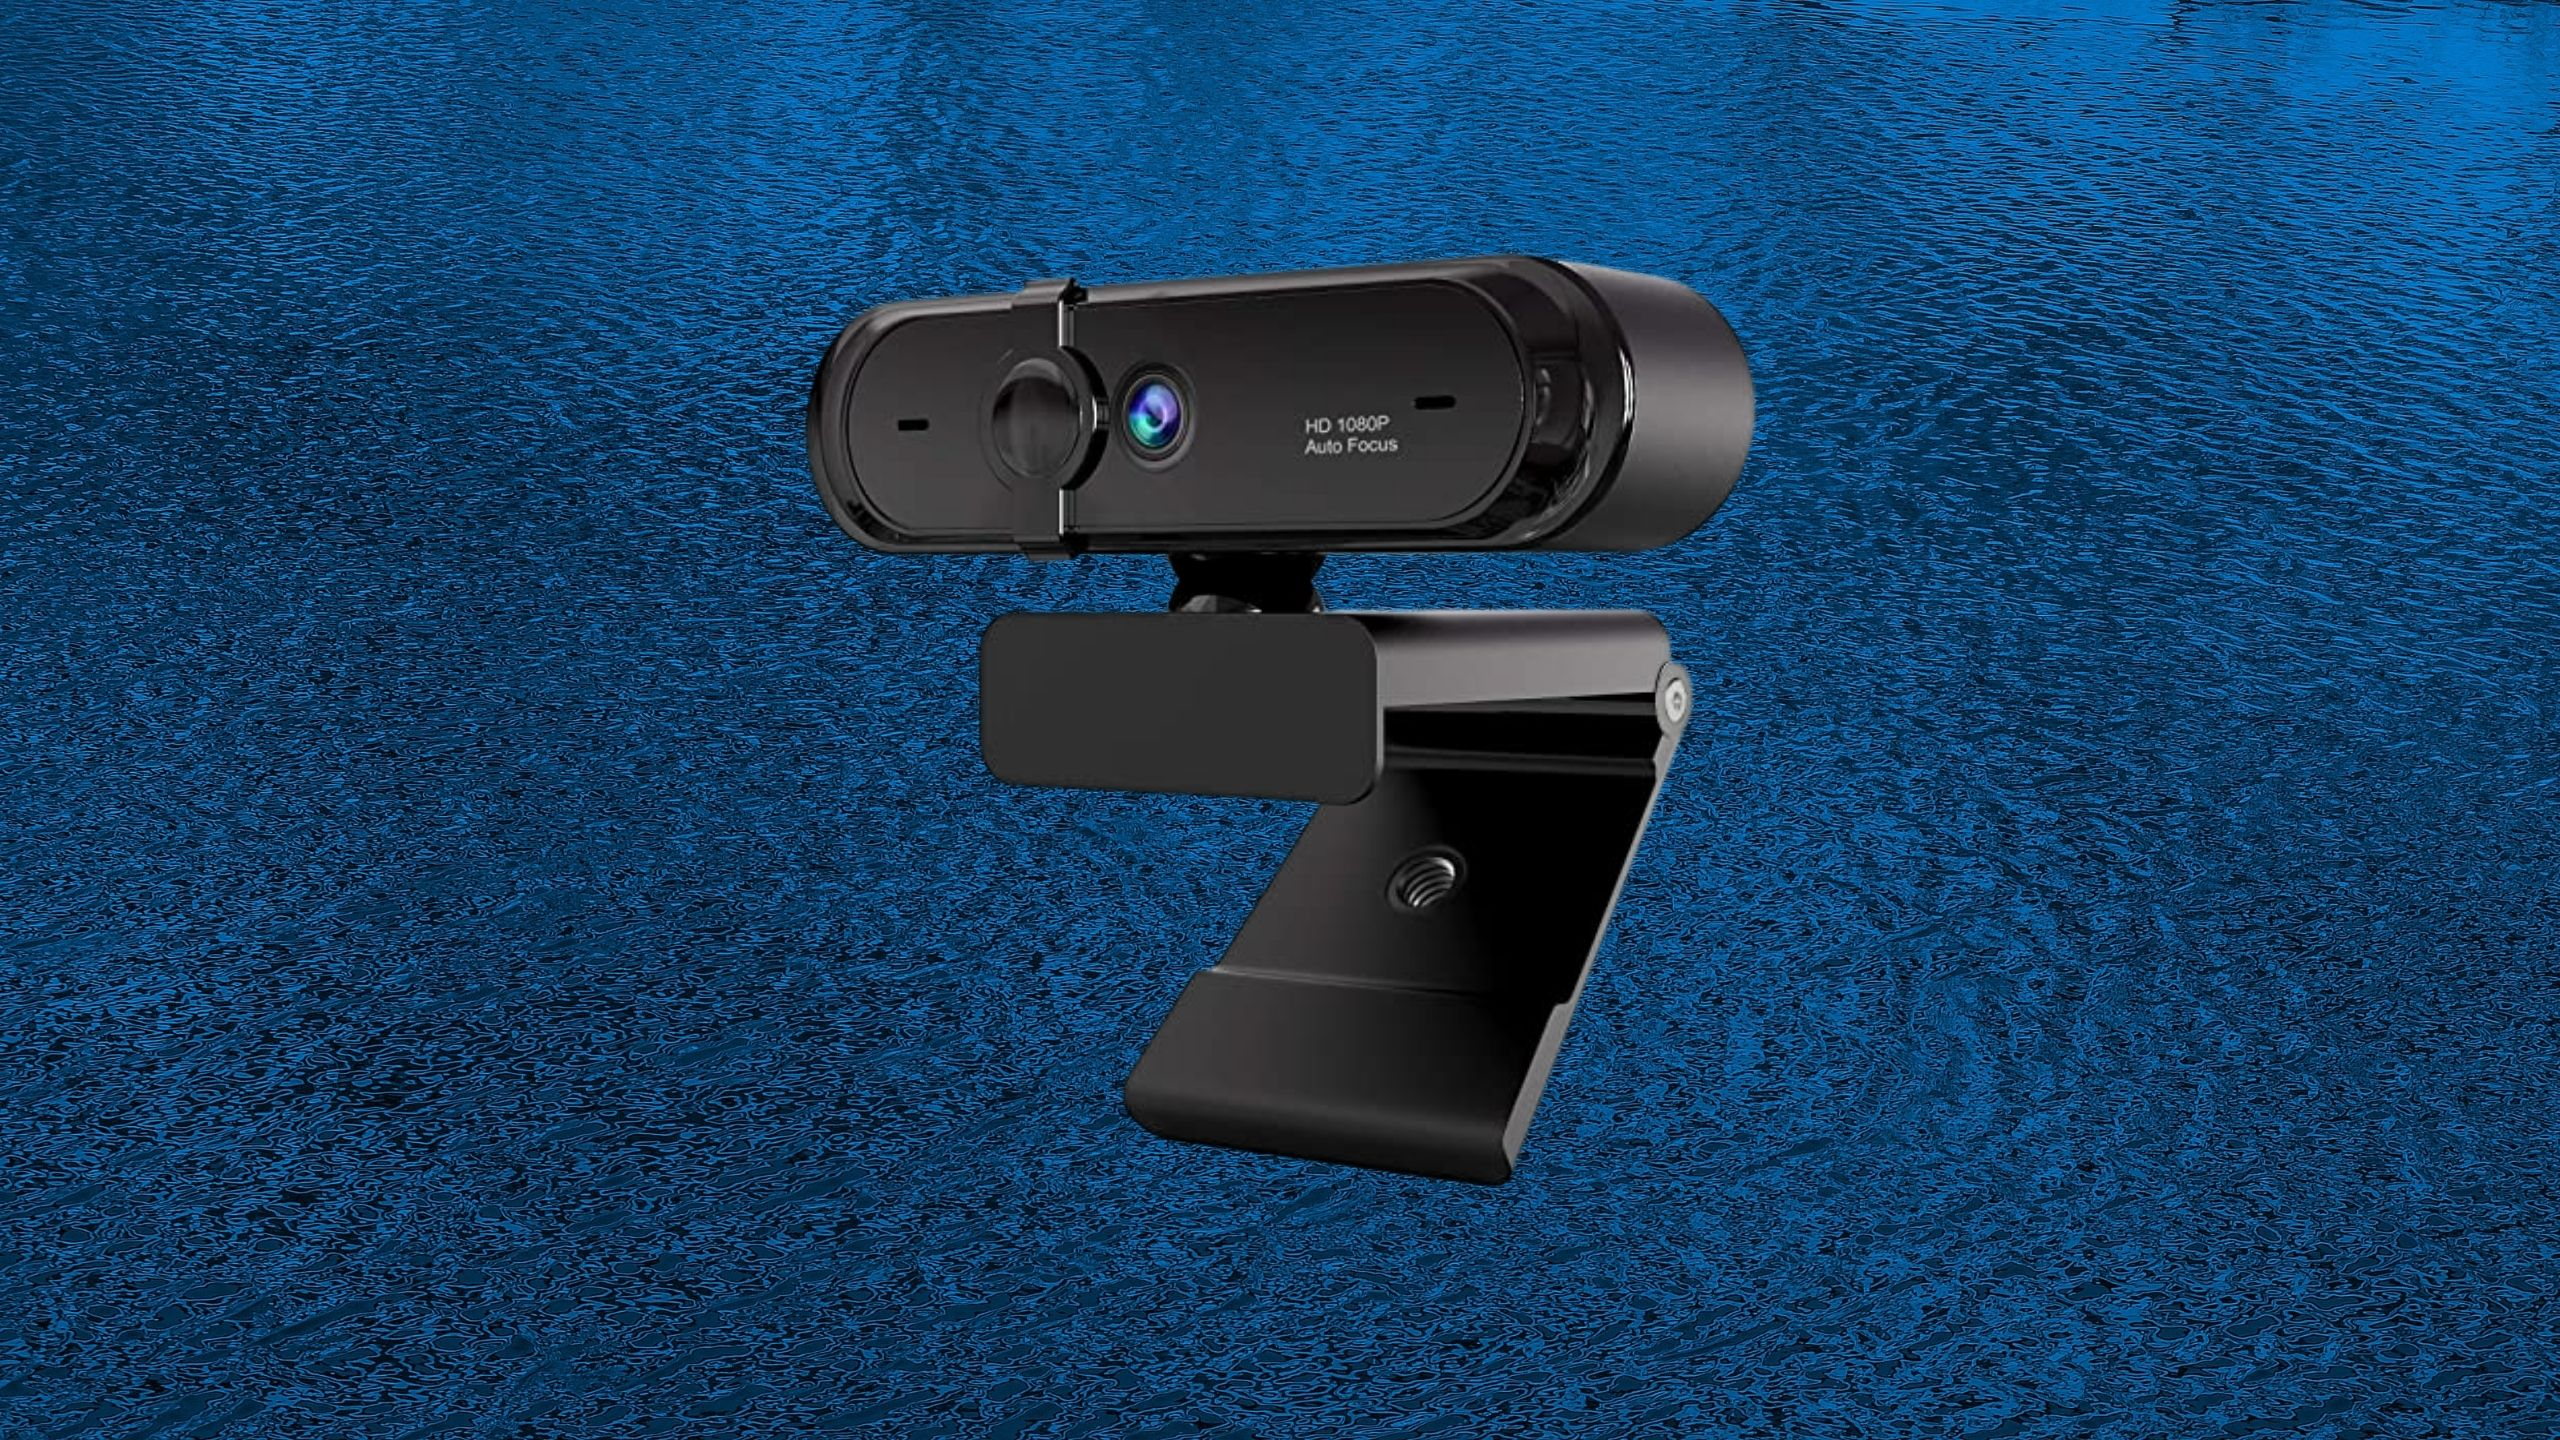 A-Mind Full HD 1080P PC Webcam